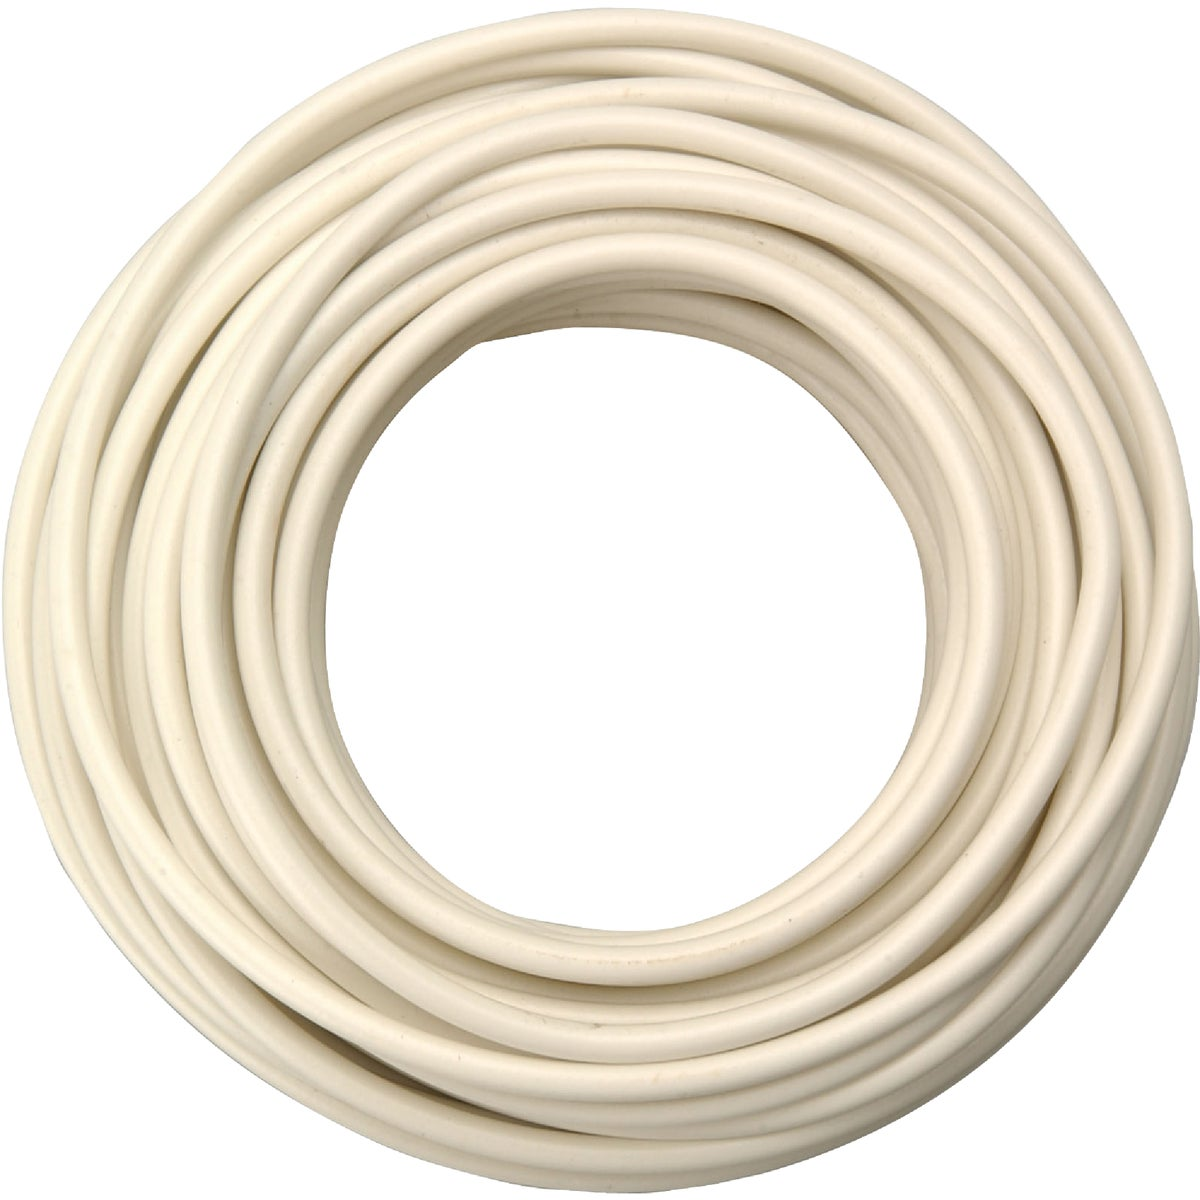 11' 12GA WHT AUTO WIRE - 12-1-17 by Woods Wire Coleman